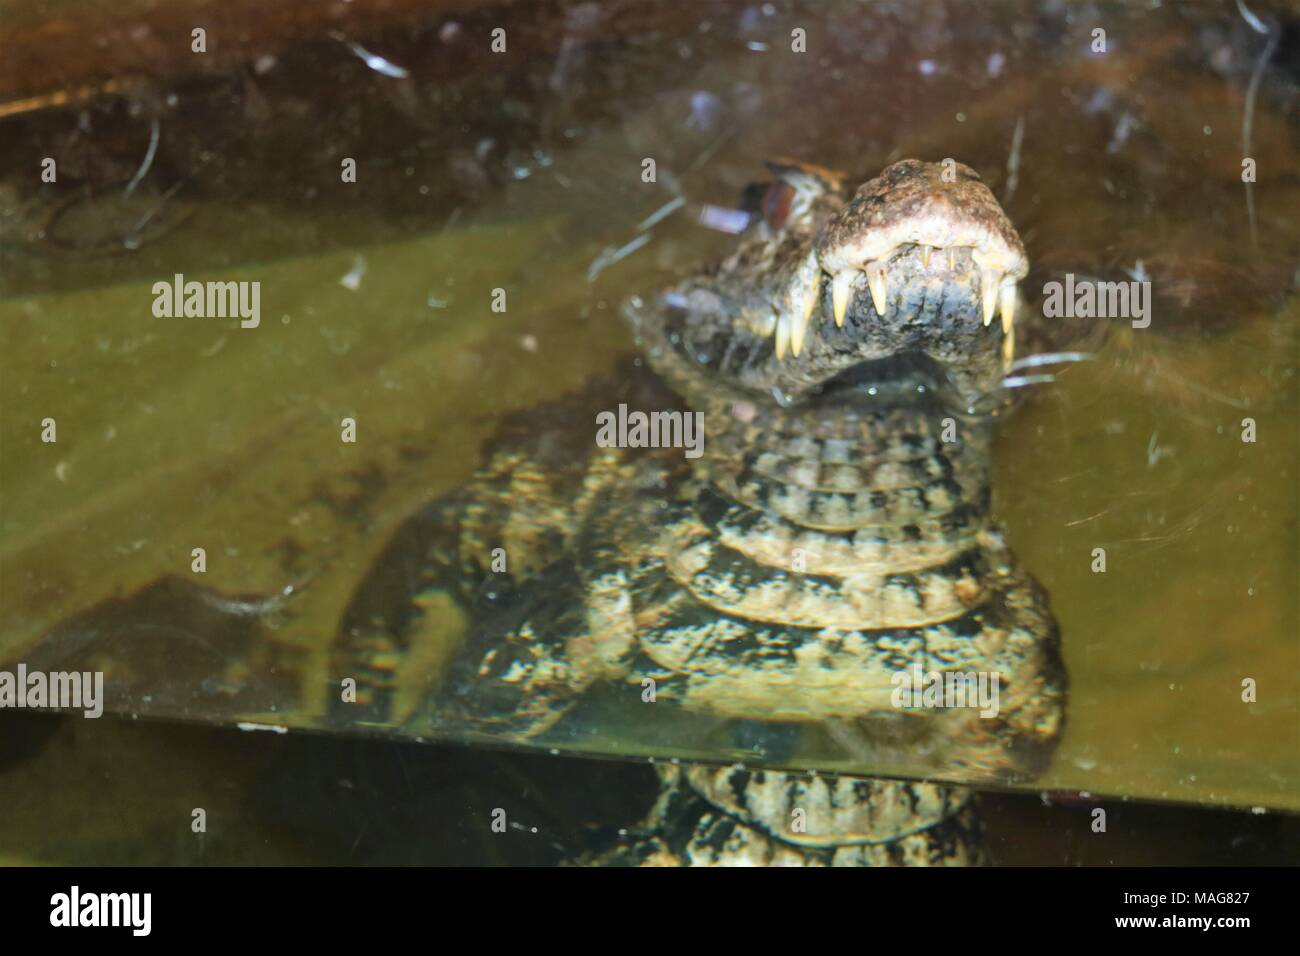 Smooth-fronted caiman half submerged in water at a tourist attraction - Stock Image